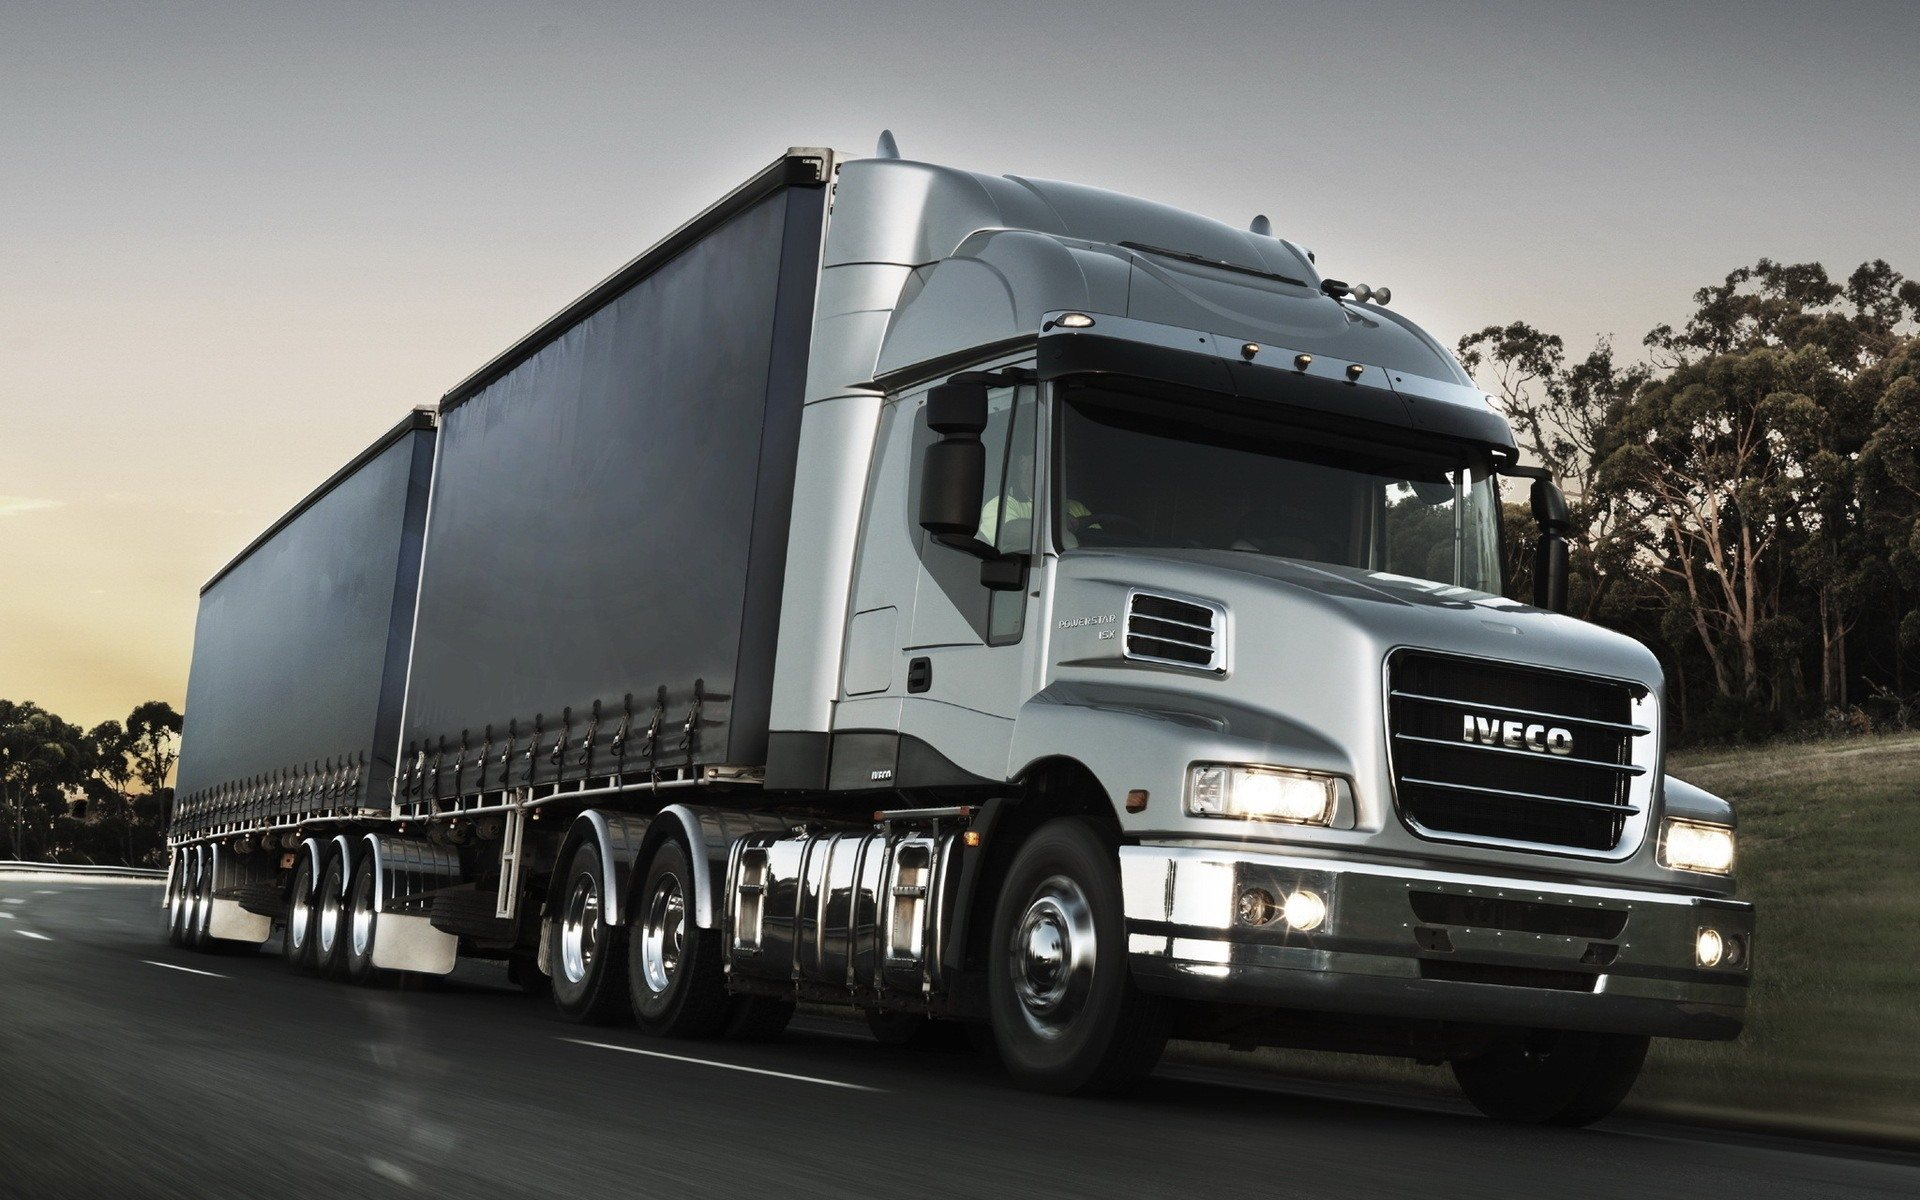 iveco-truck-wallpaper-free-download